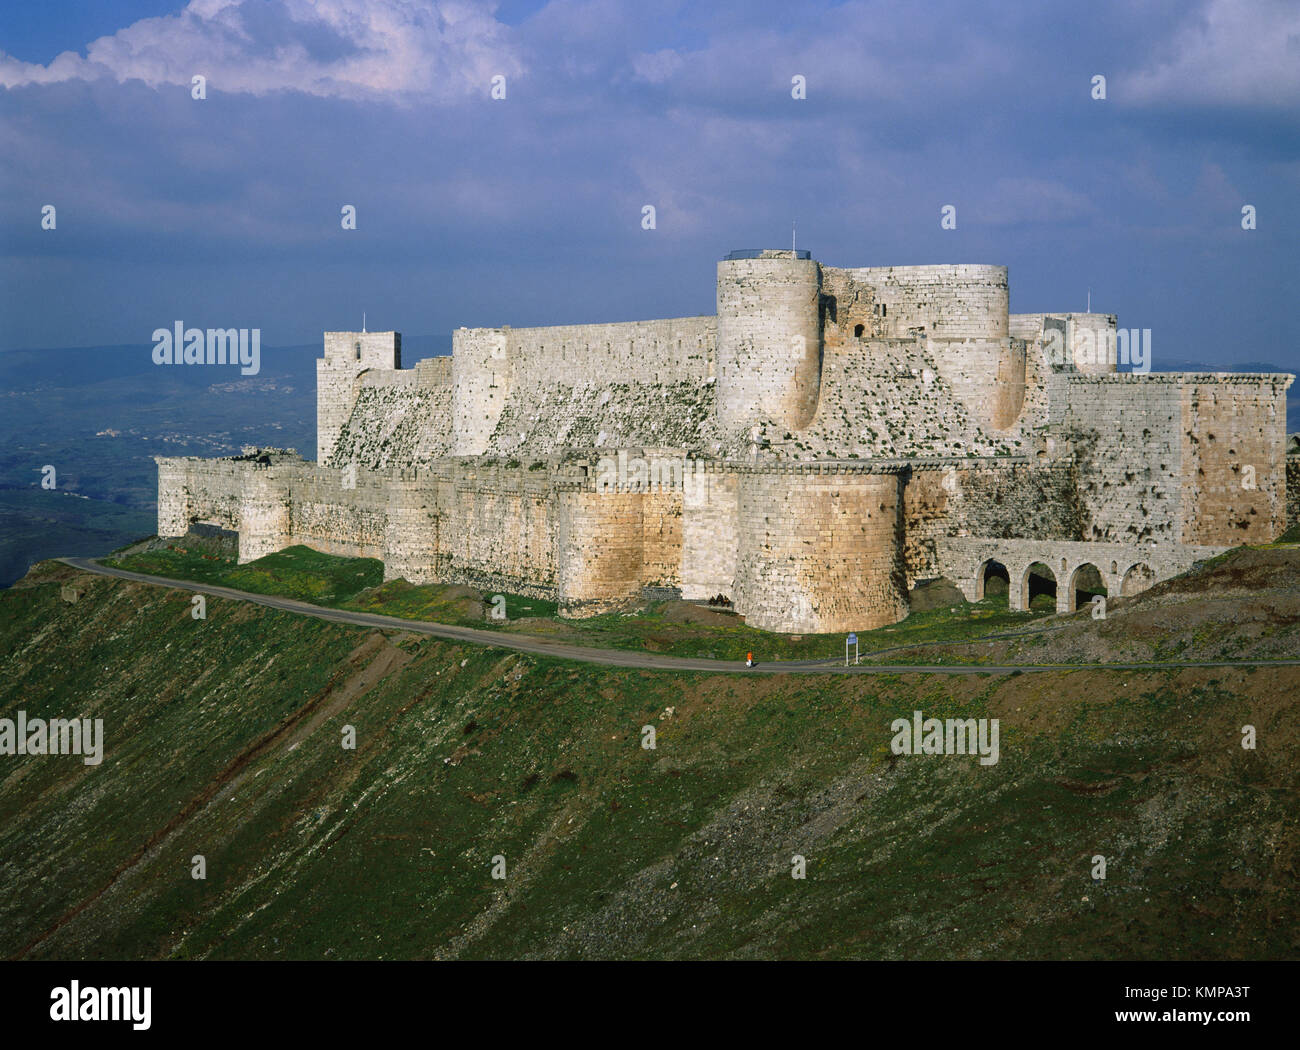 Krak des Chevaliers (Castle of the Knights). Qalaat al Hosn. Syria - Stock Image